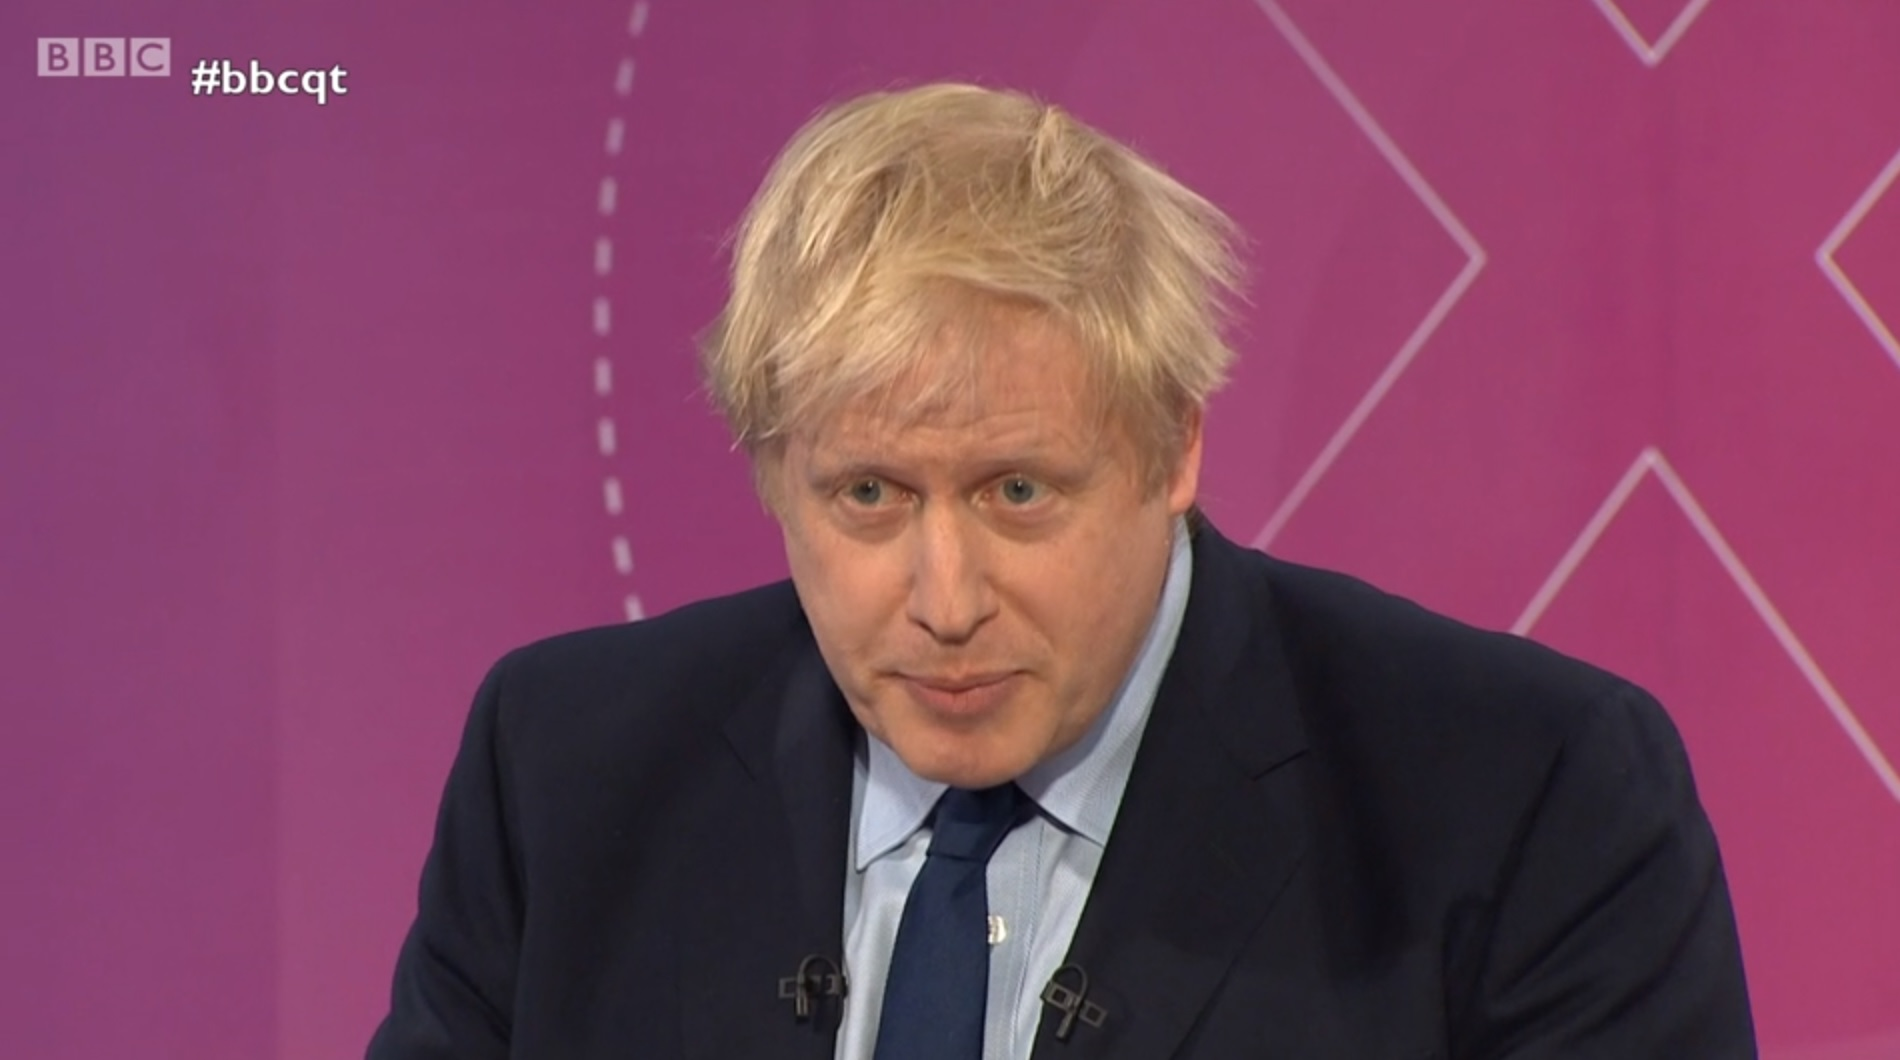 Boris Johnson appeared on BBC Question Time ahead of the December 12 election